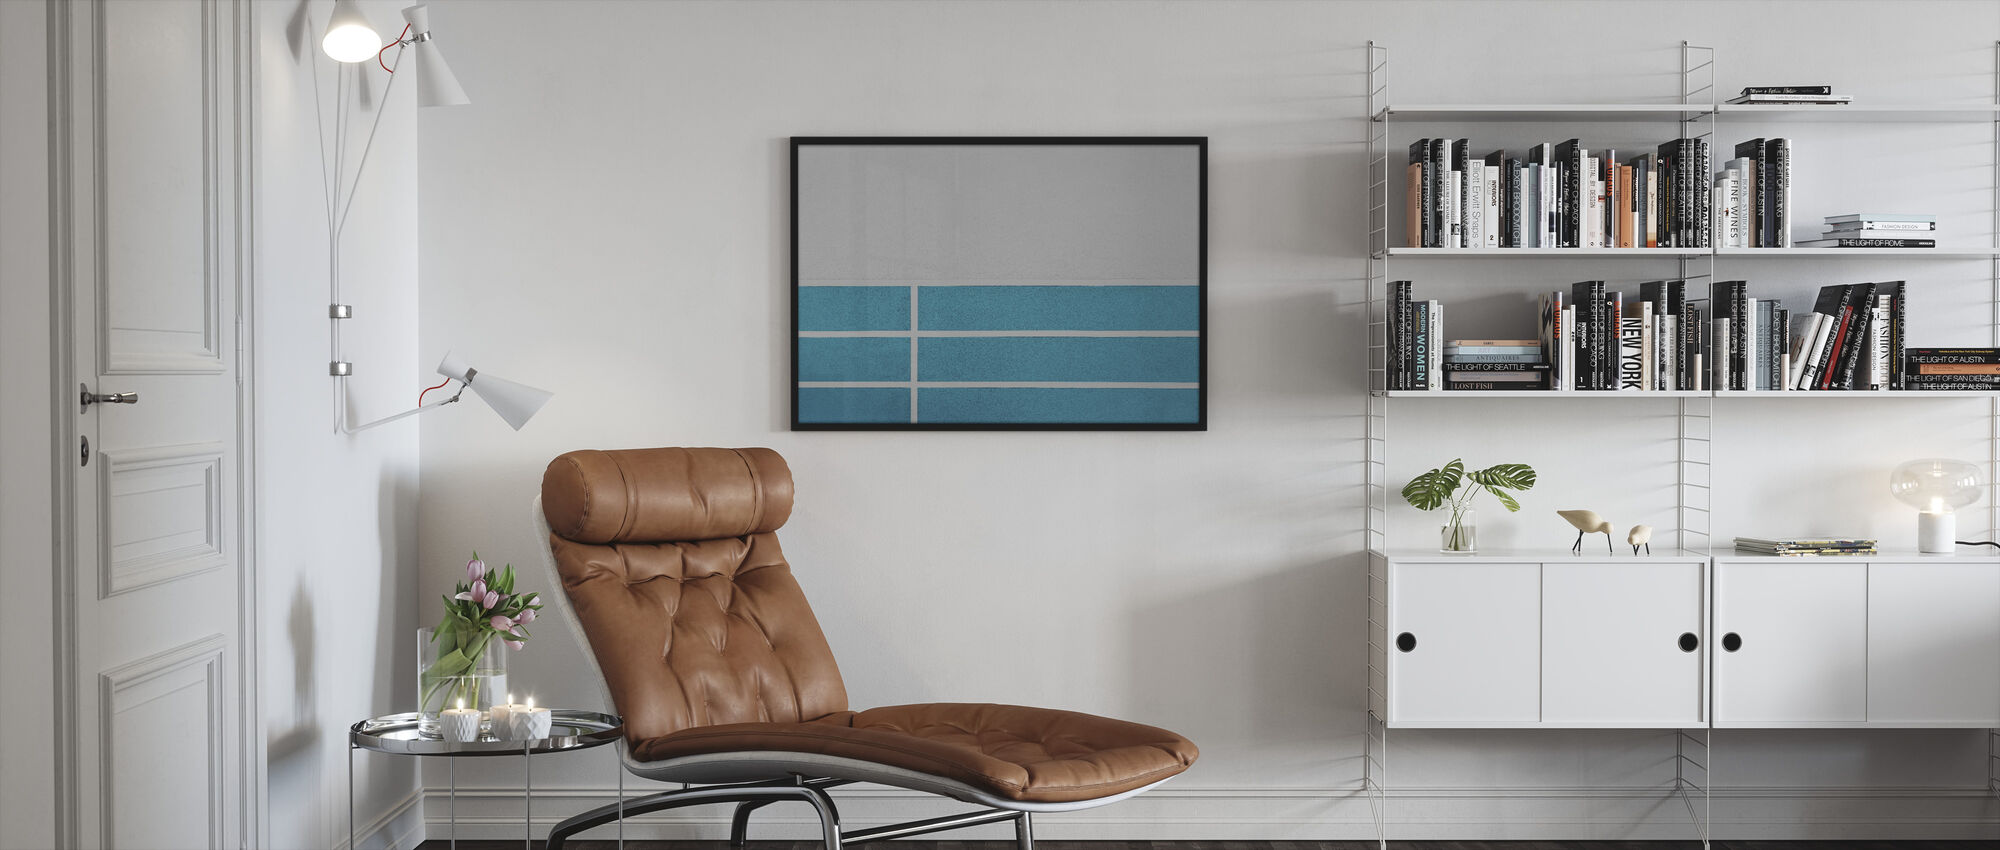 Blue Lines Wall - Framed print - Living Room